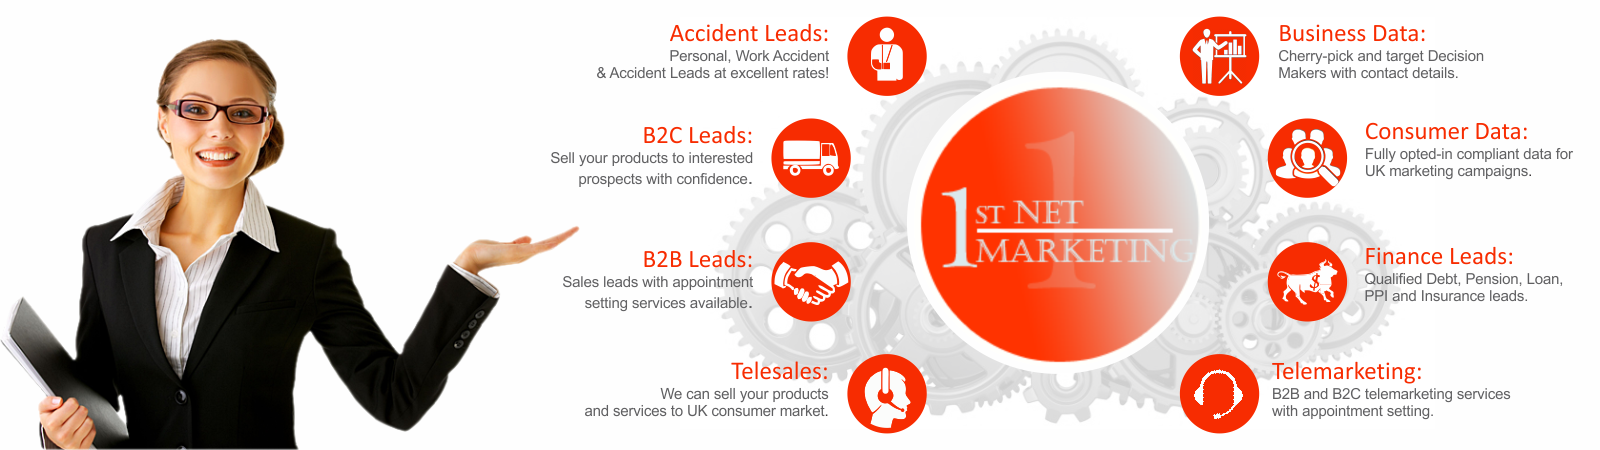 1stnetmarketing Is The Best Company B2b Leads Want To Reach Other